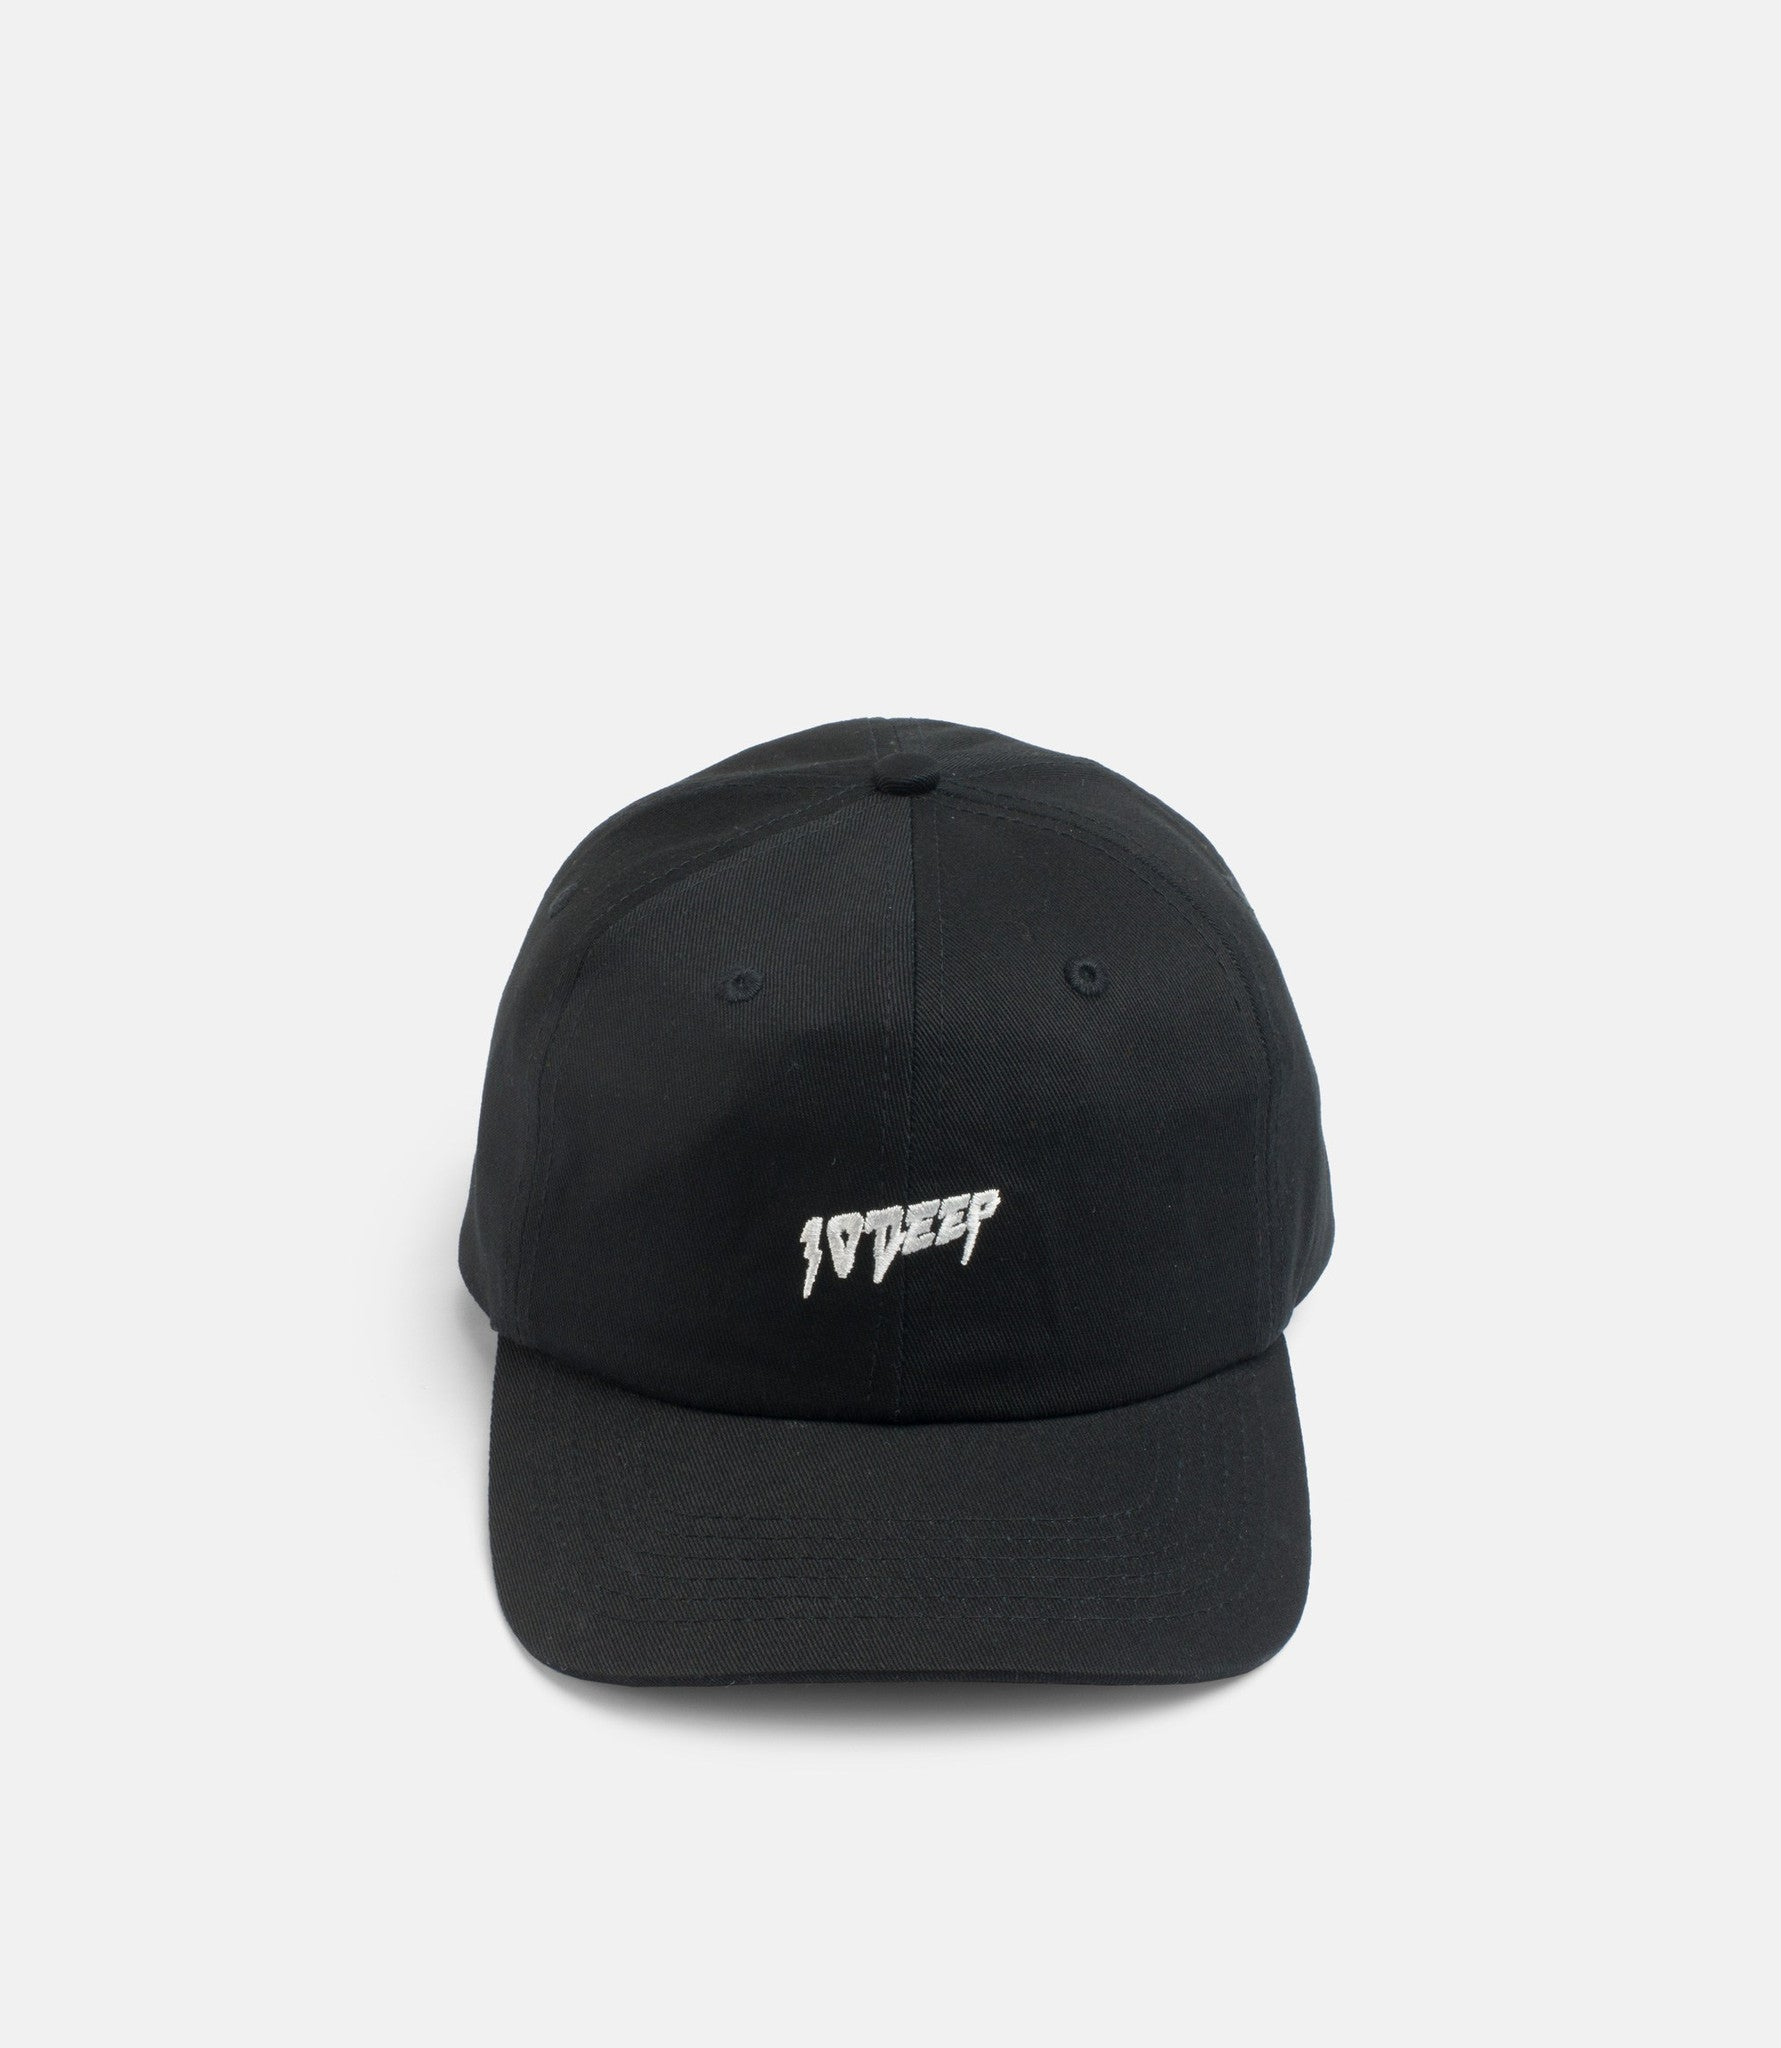 10Deep - Sound & Fury Strapback, Black - The Giant Peach - 1